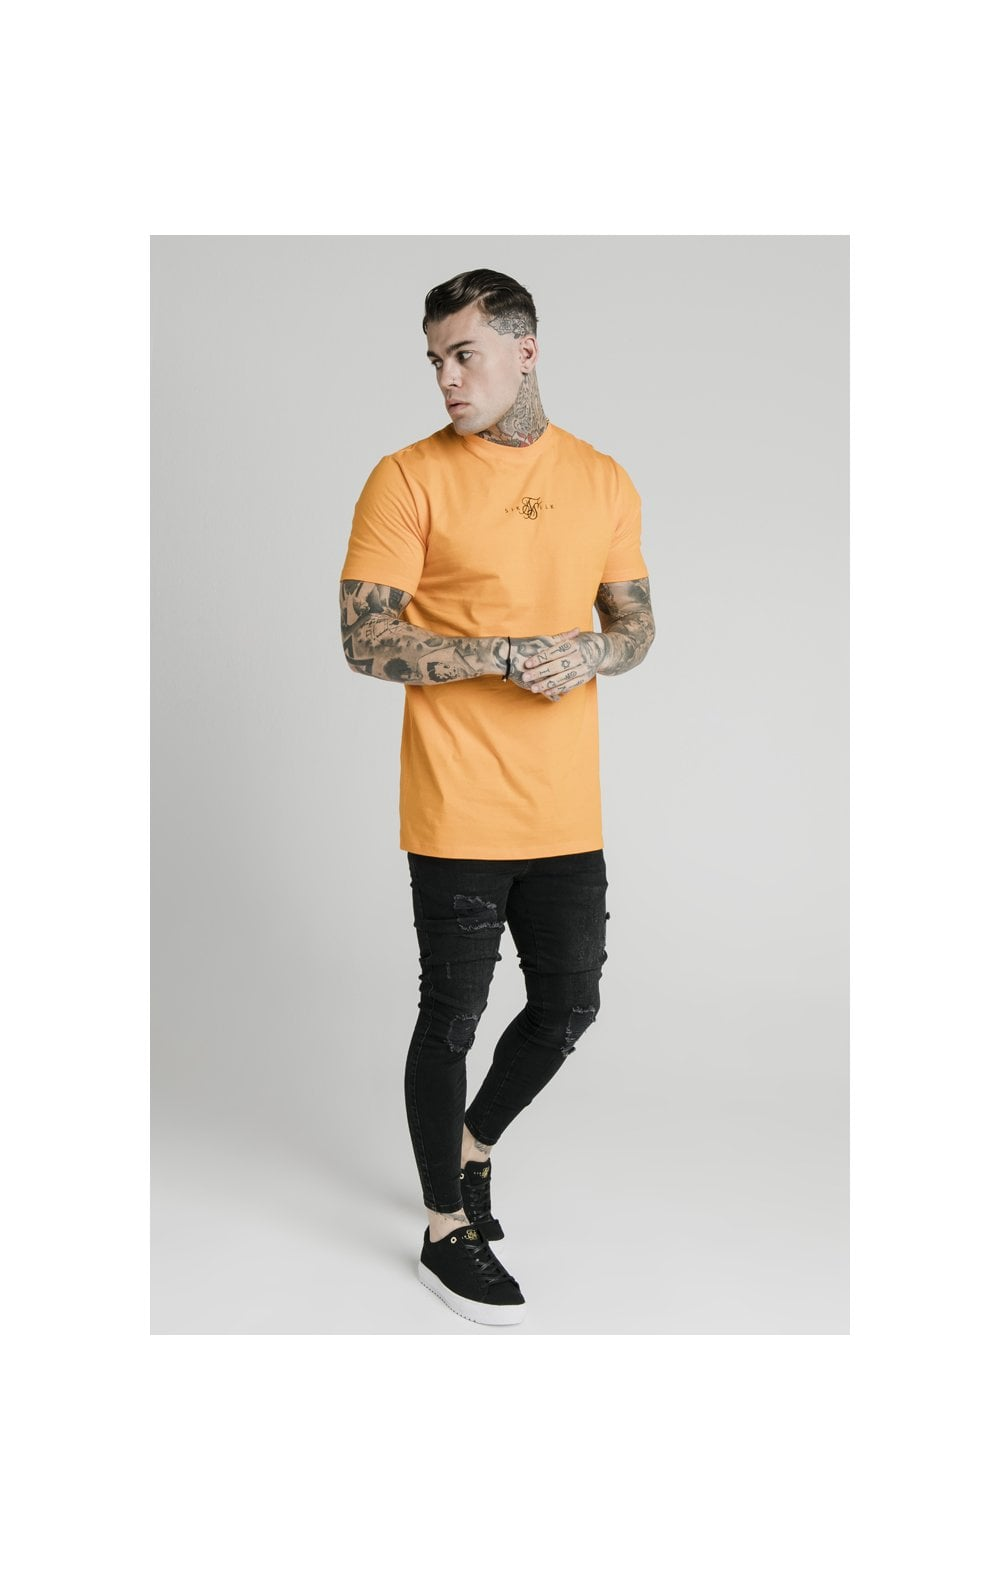 SikSilk S/S Square Hem Tee – Orange (2)